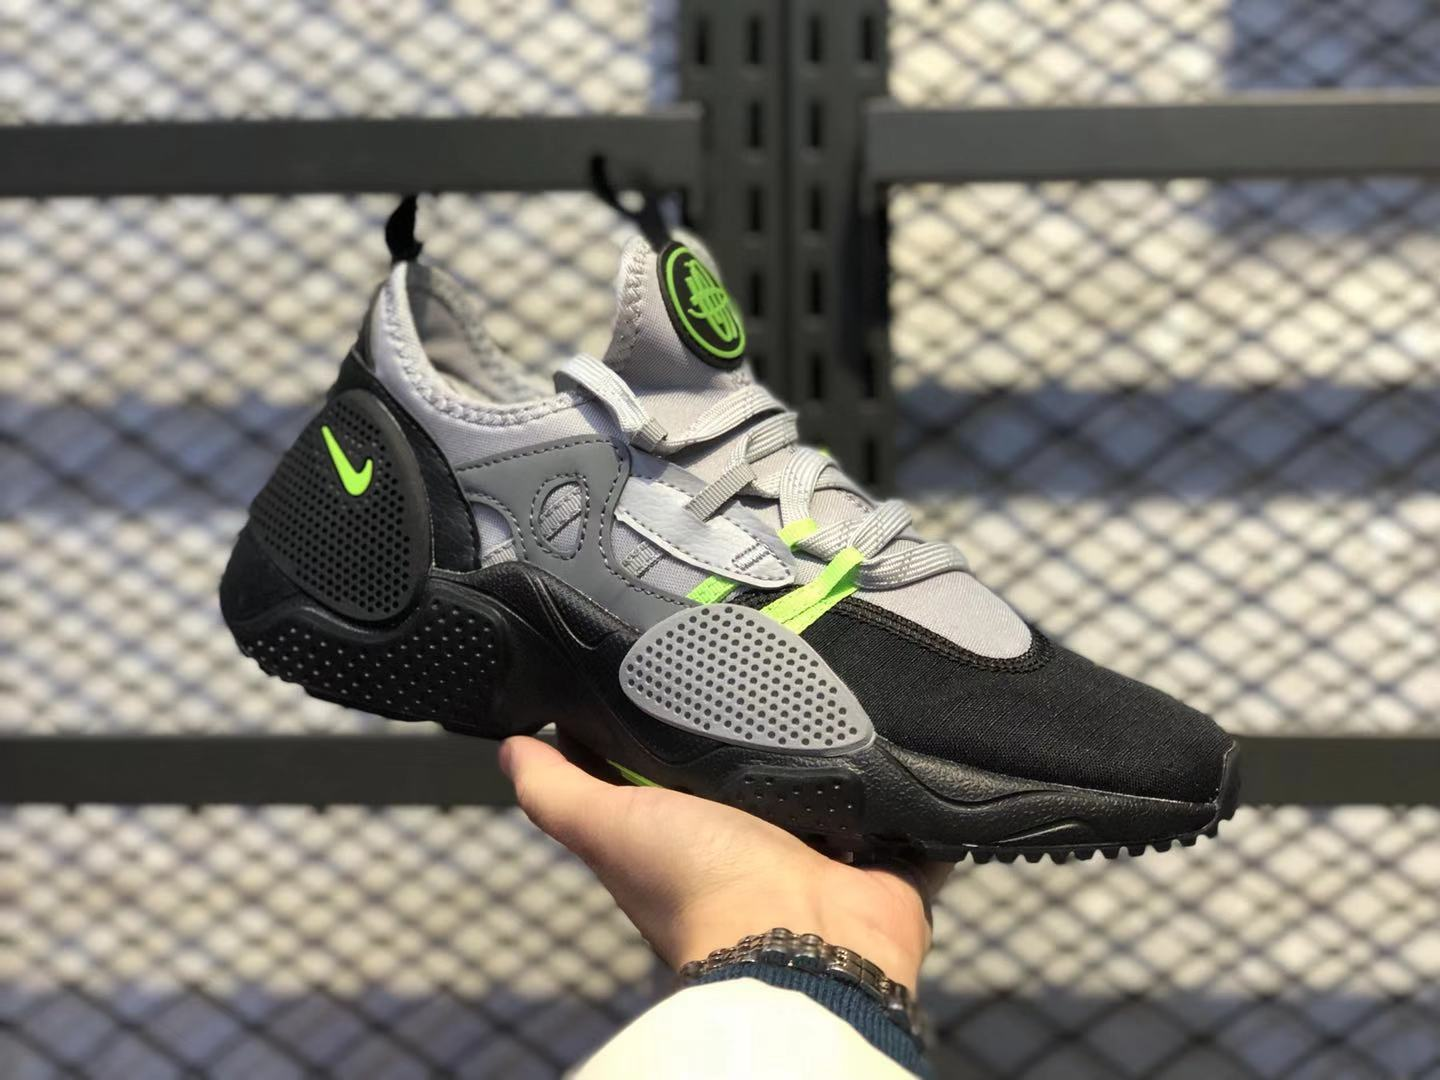 Nike Air Huarache E.D.G.E.Black/Wolf Grey-Neon Green AO1697-006